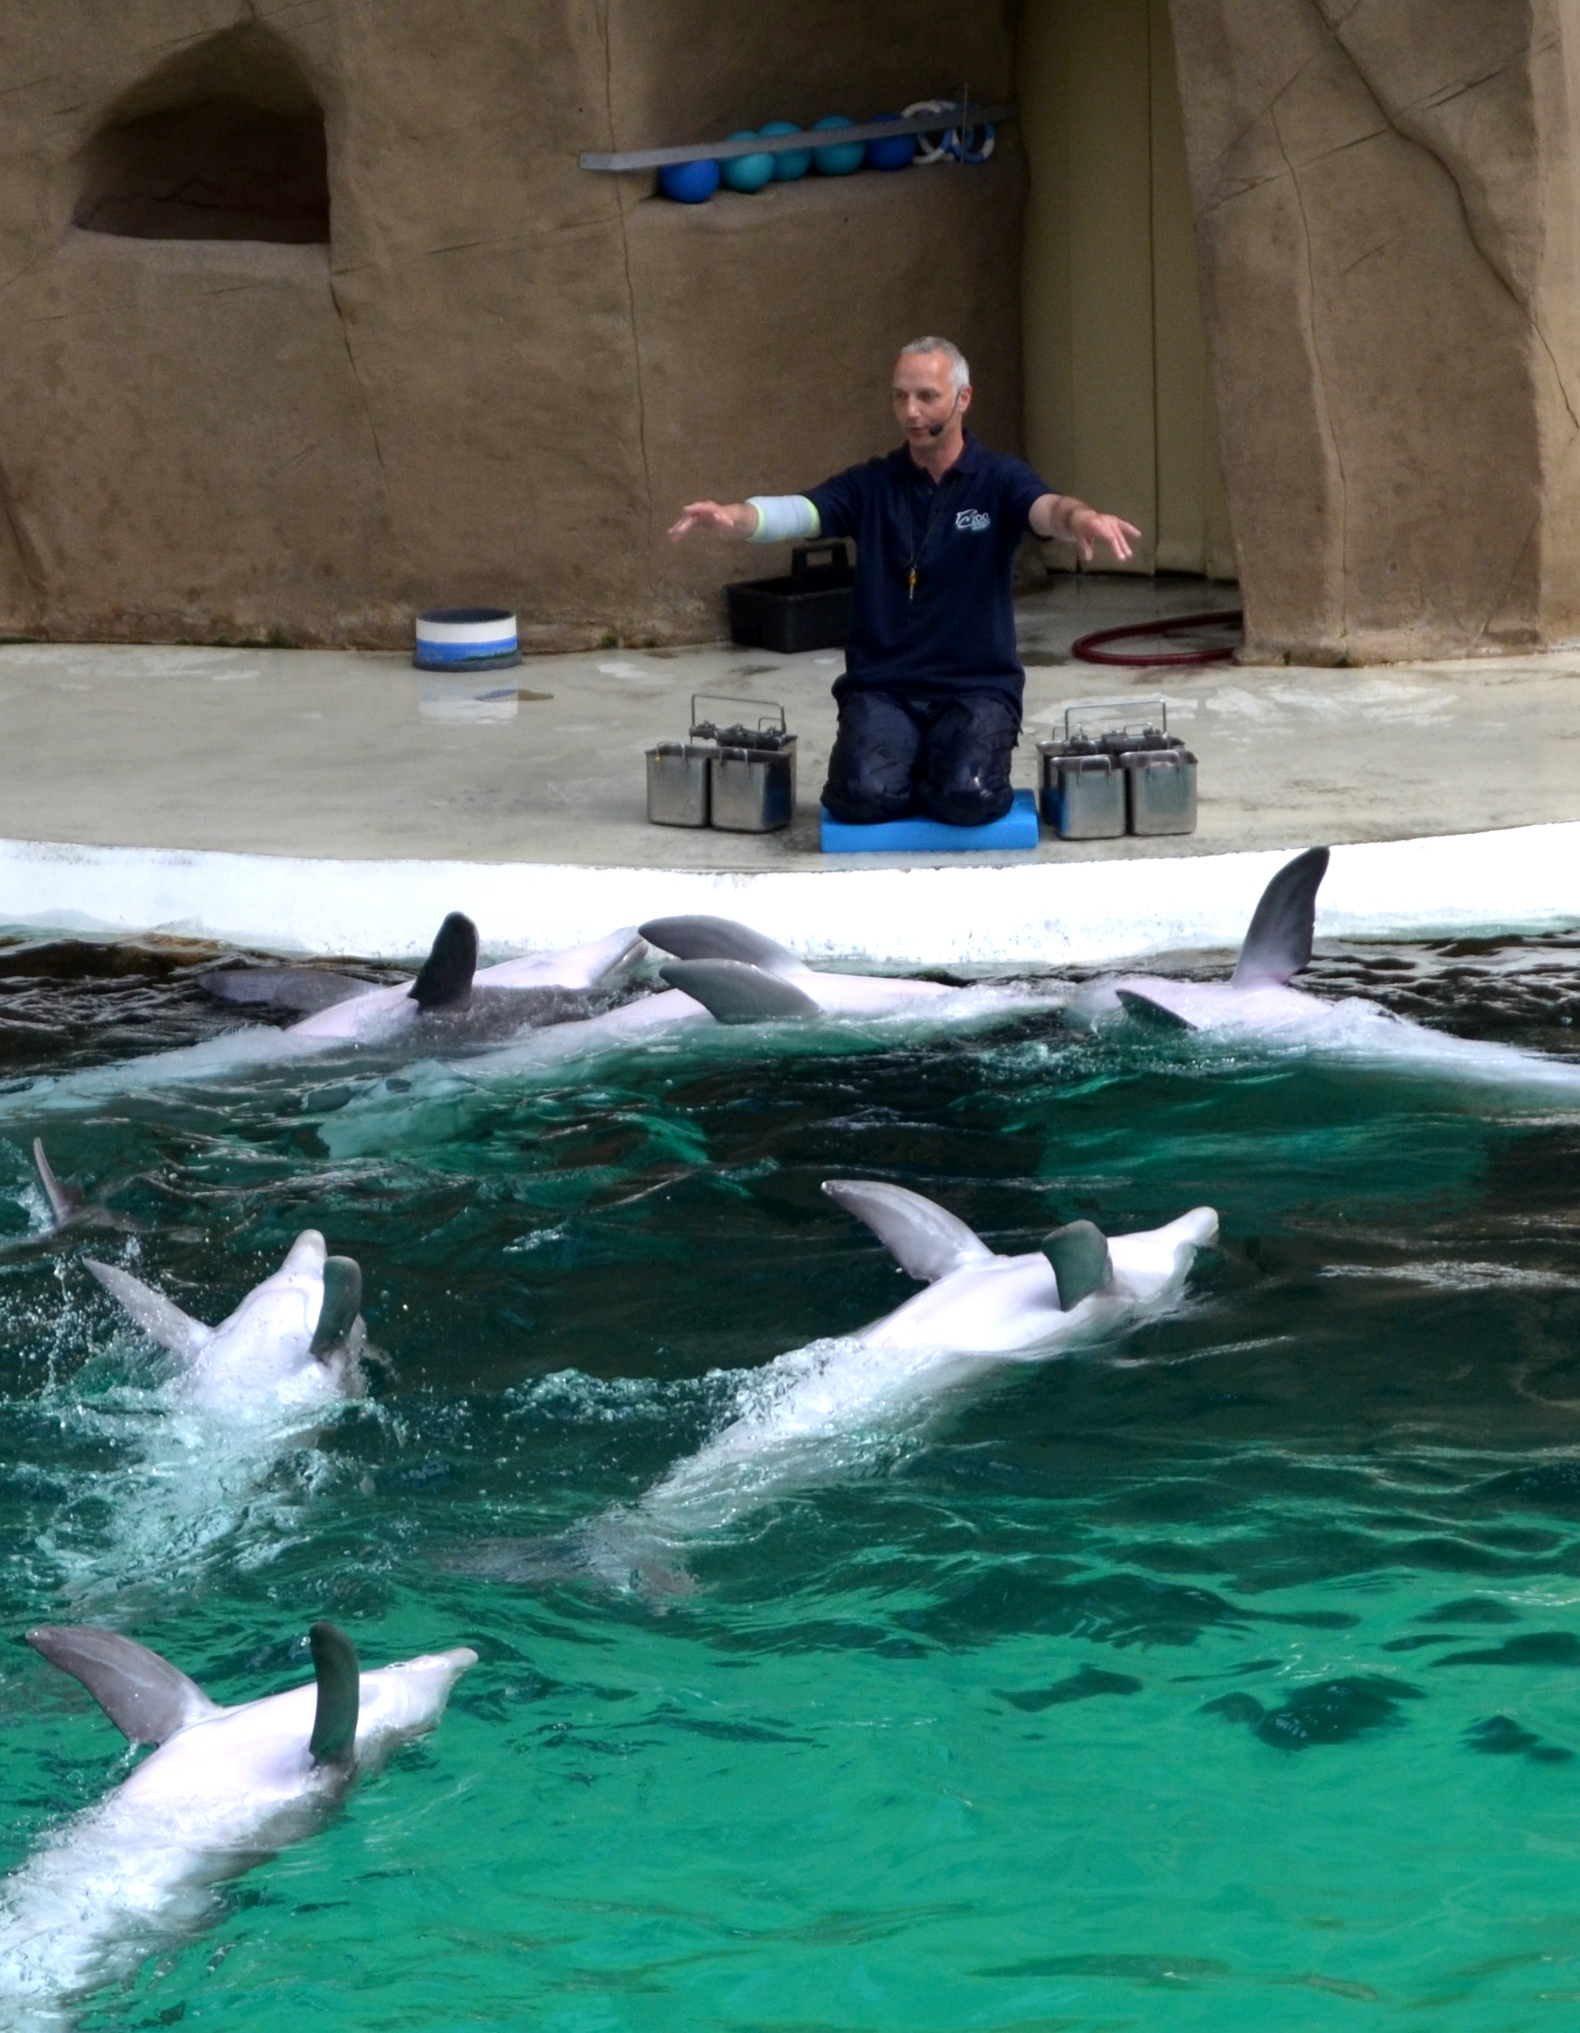 Through the use of food control, the trainer gains complete control over the dolphins.